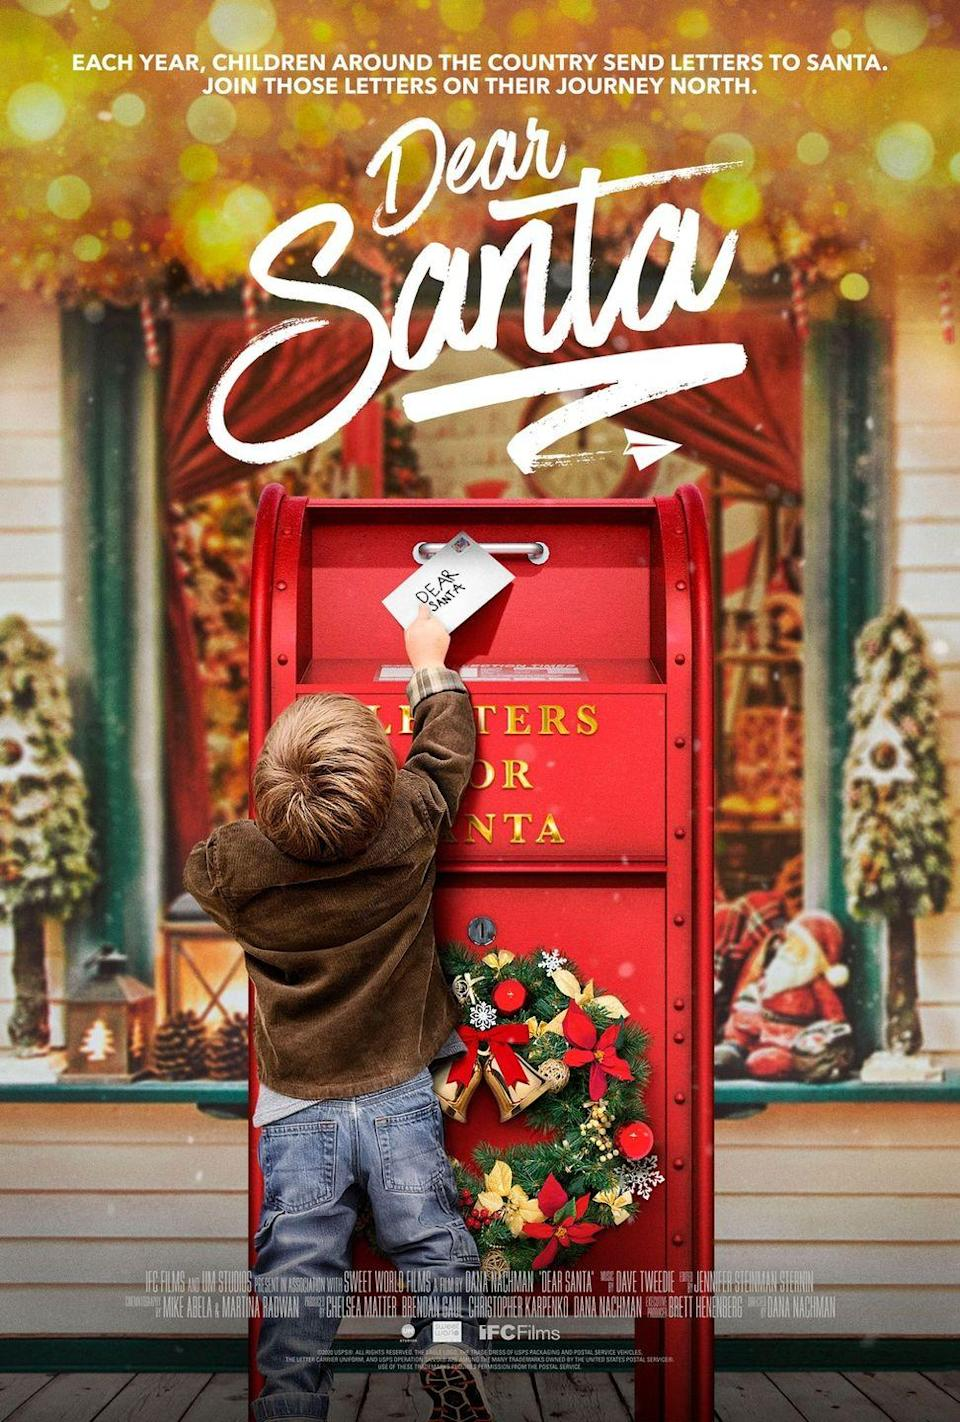 """<p>This sweet documentary highlights the 100-year-old 'Operation Santa' program operated by the US Postal Service. Through this program, people can """"adopt"""" letters that children have written to Santa and make a child's Christmas wish come true. The film focuses on several 'Operation Santa' centers throughout the country. It's sure to give you all the warm fuzzy feelings. </p><p><a class=""""link rapid-noclick-resp"""" href=""""https://go.redirectingat.com?id=74968X1596630&url=https%3A%2F%2Fwww.hulu.com%2Fmovie%2Fdear-santa-3d5e6f8e-ac91-4708-bba8-23635414a2b1&sref=https%3A%2F%2Fwww.womansday.com%2Flife%2Fentertainment%2Fg29702471%2Fnew-christmas-movies%2F"""" rel=""""nofollow noopener"""" target=""""_blank"""" data-ylk=""""slk:STREAM NOW"""">STREAM NOW</a></p>"""